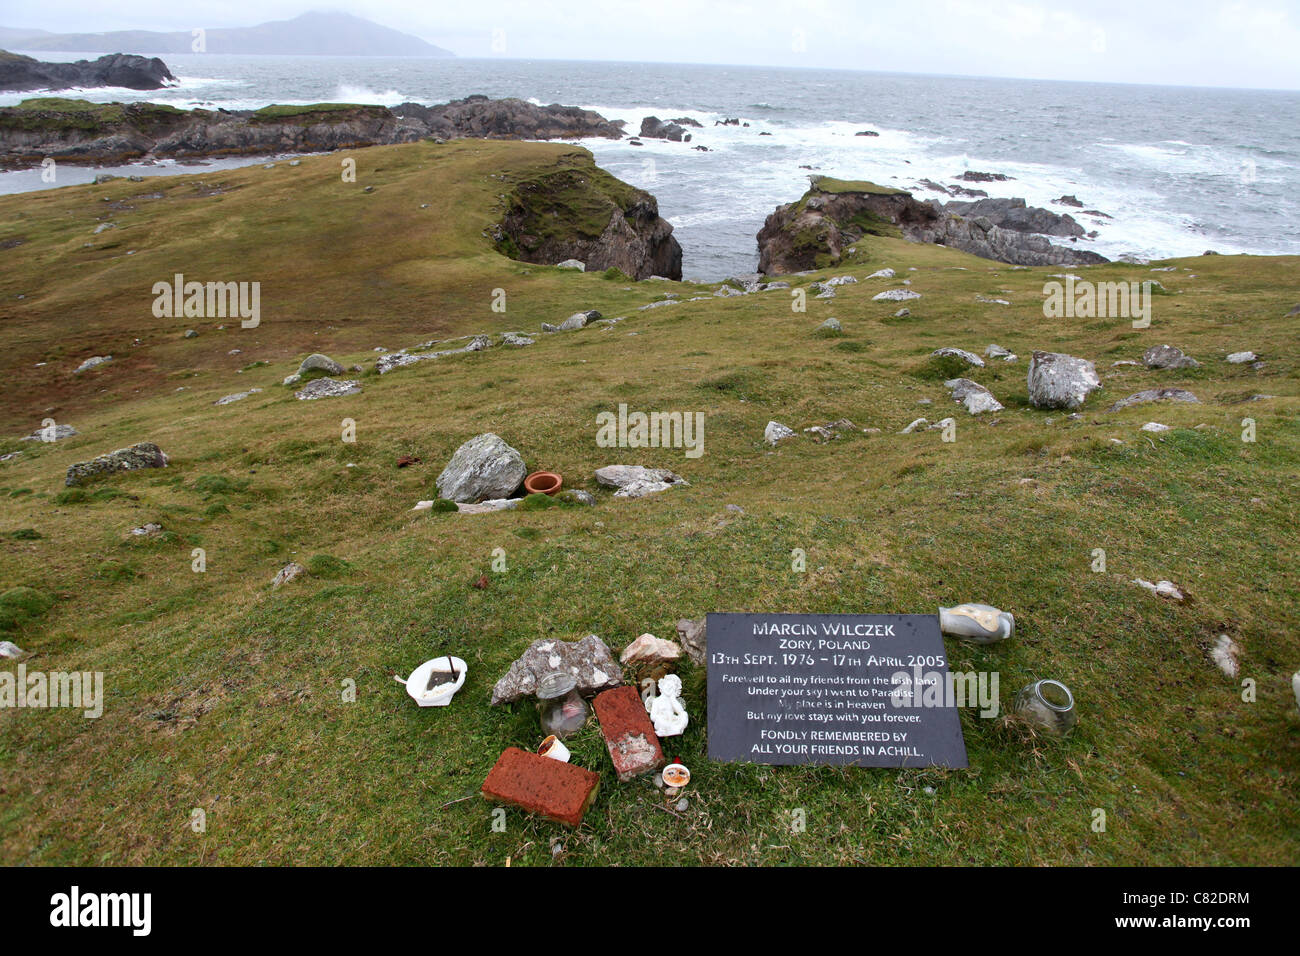 Polish Memorial to Marcin Wilczek on Achill Island - Stock Image